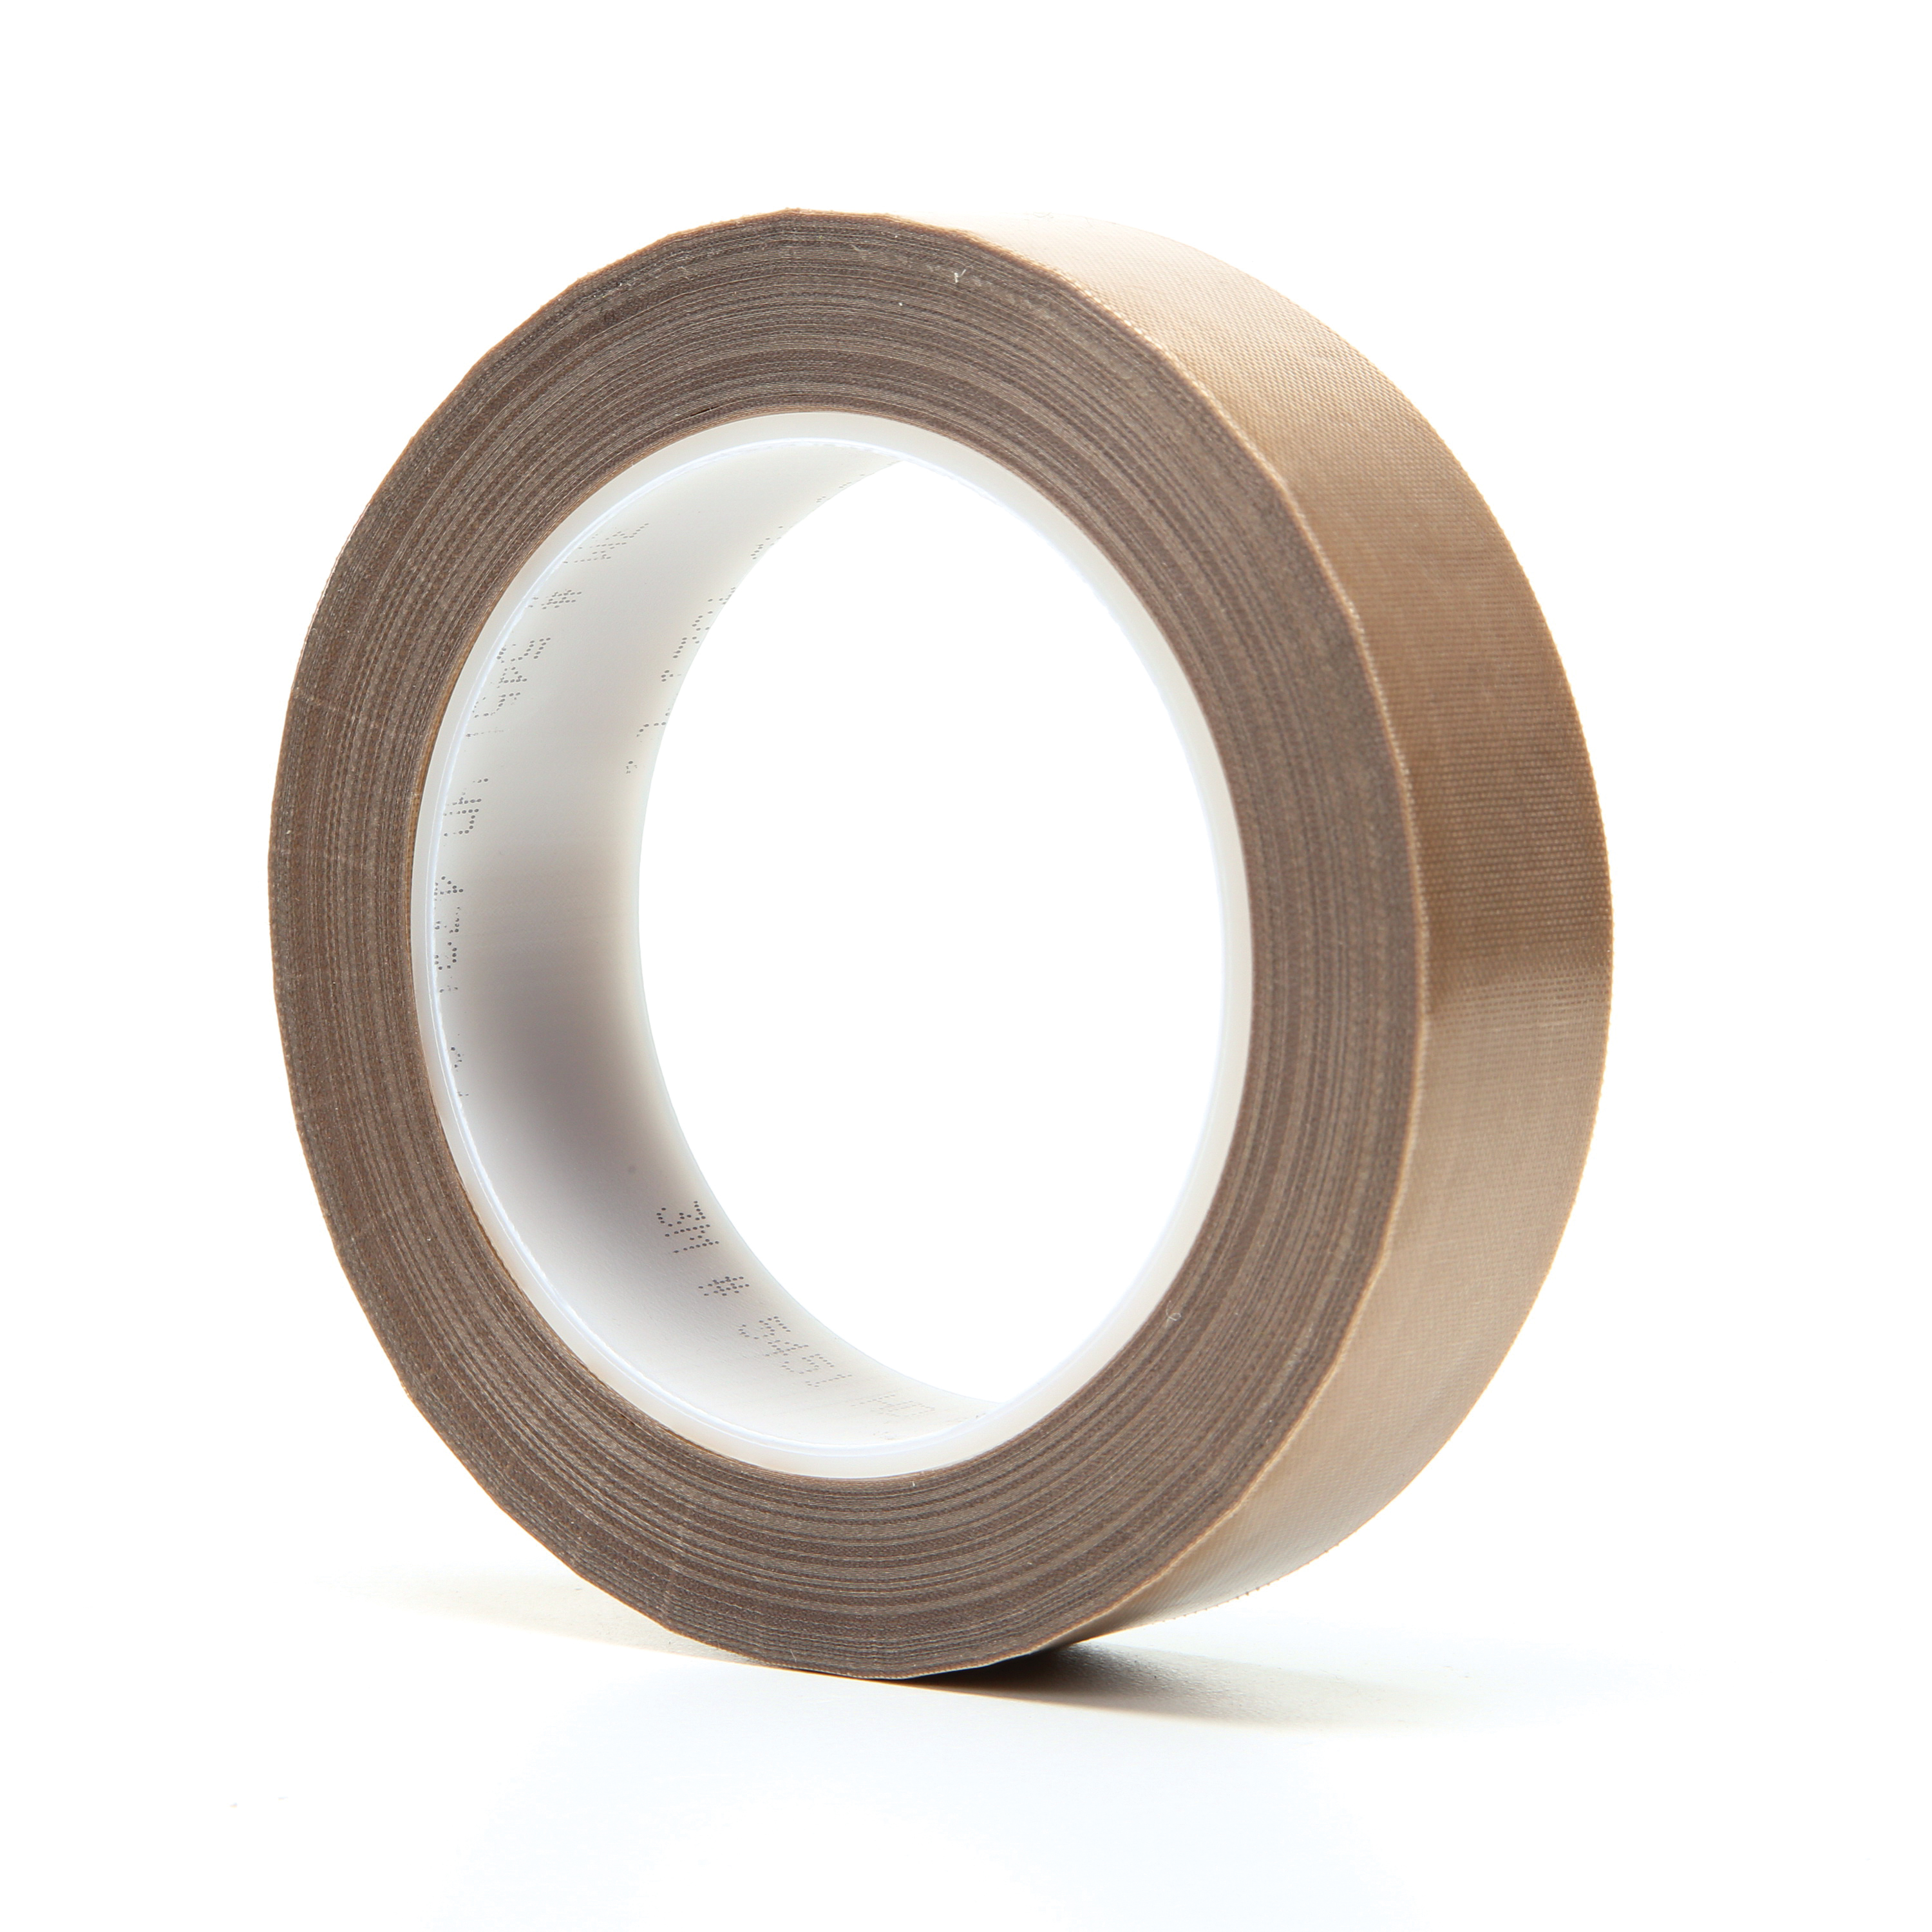 3M™ 021200-16152 Pressure Sensitive Glass Cloth Tape, 36 yd L x 1 in W, 5.6 mil THK, Silicon Adhesive, Woven Glass Cloth Impregnated with PTFE Backing, Brown